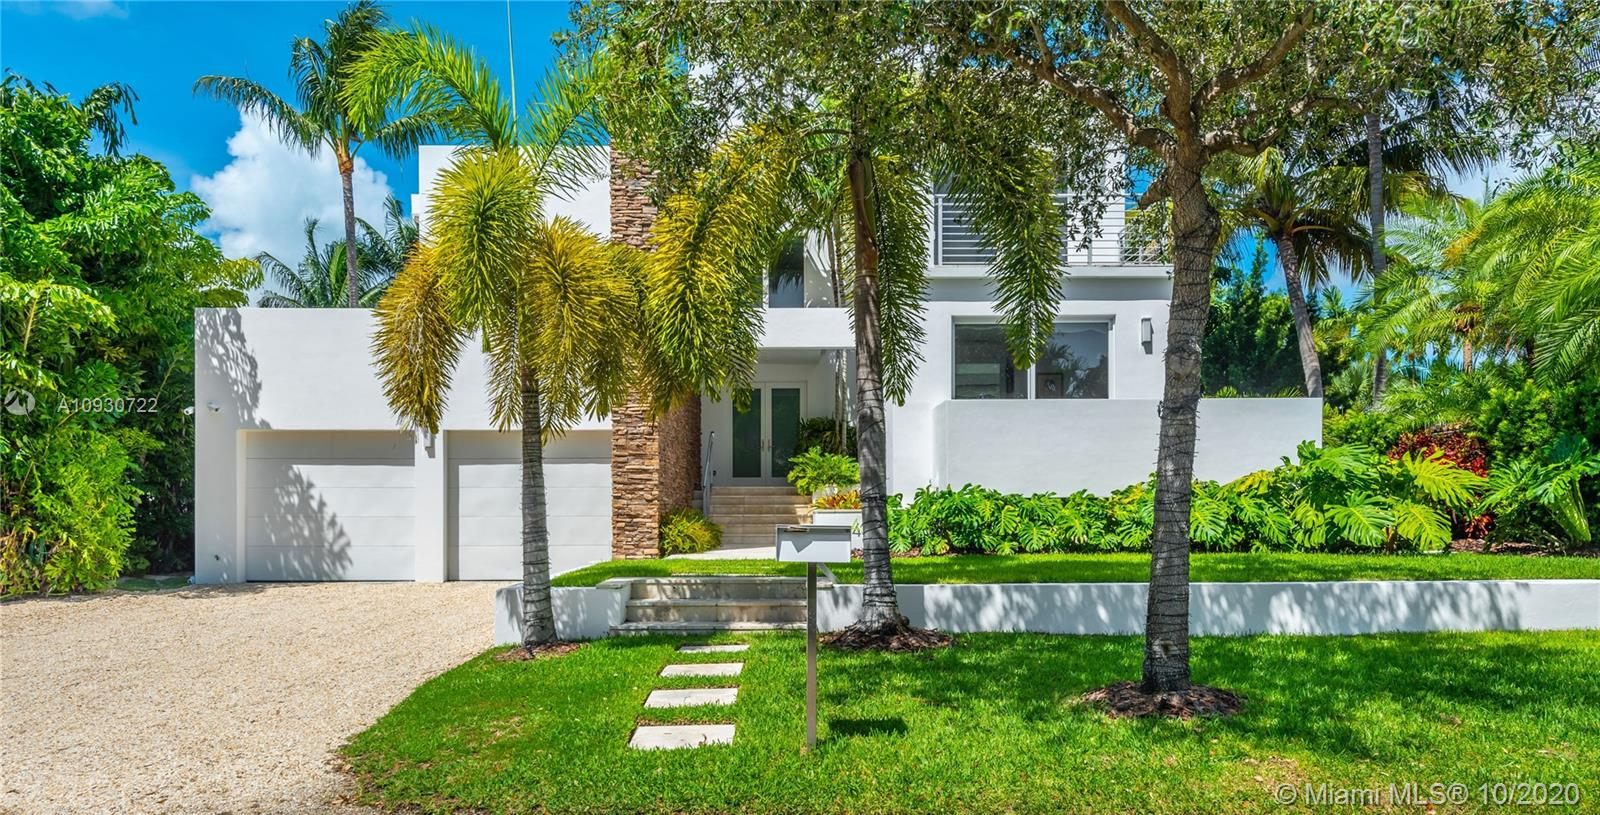 432  Warren Lane  For Sale A10930722, FL